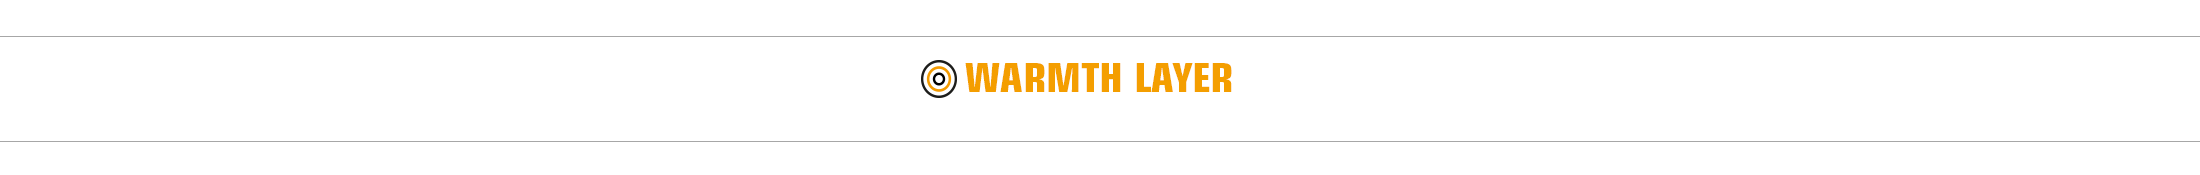 Warmth layer - insulates and protects